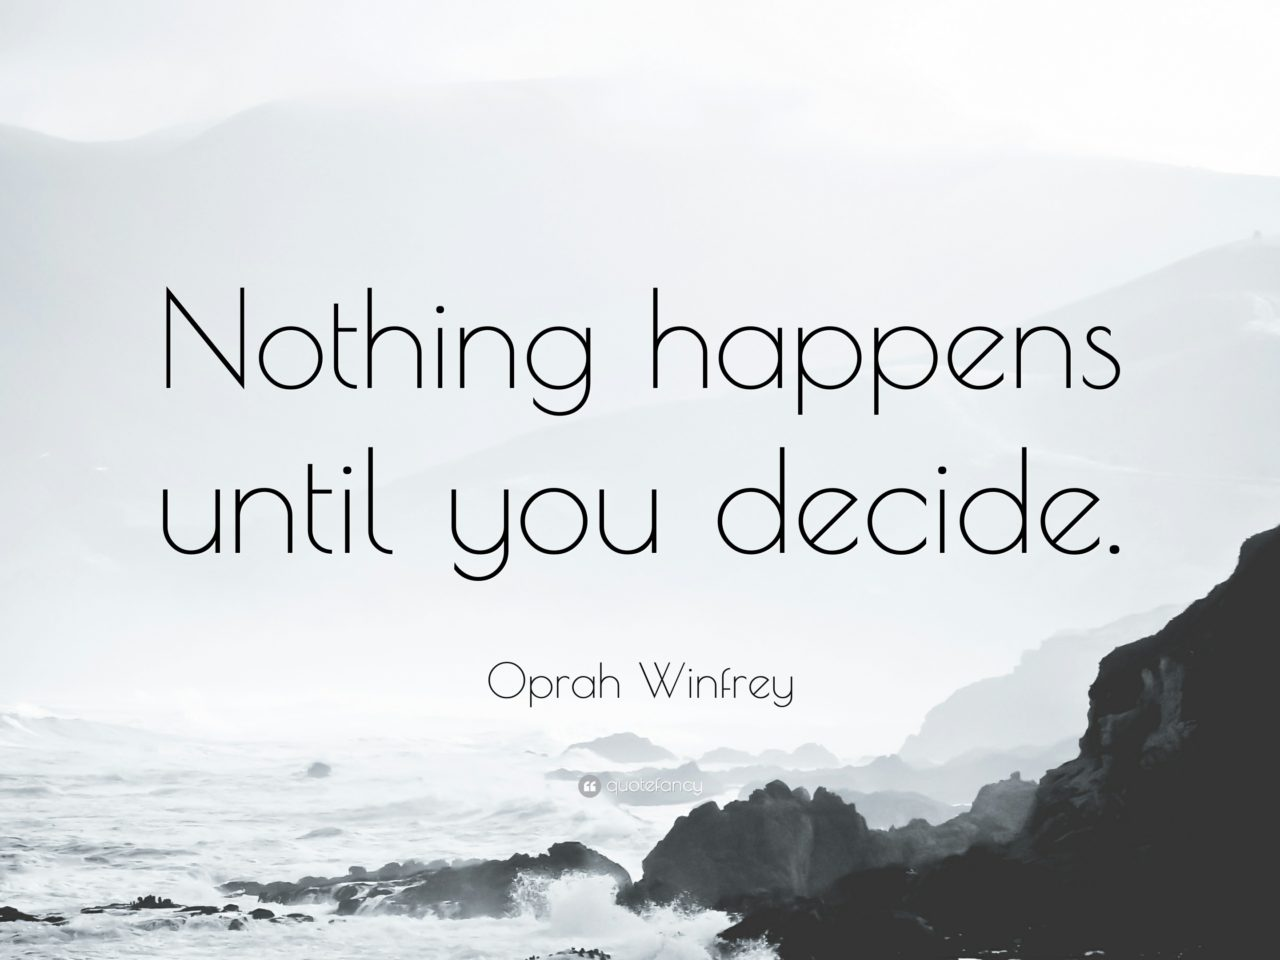 418244-Oprah-Winfrey-Quote-Nothing-happens-until-you-decide